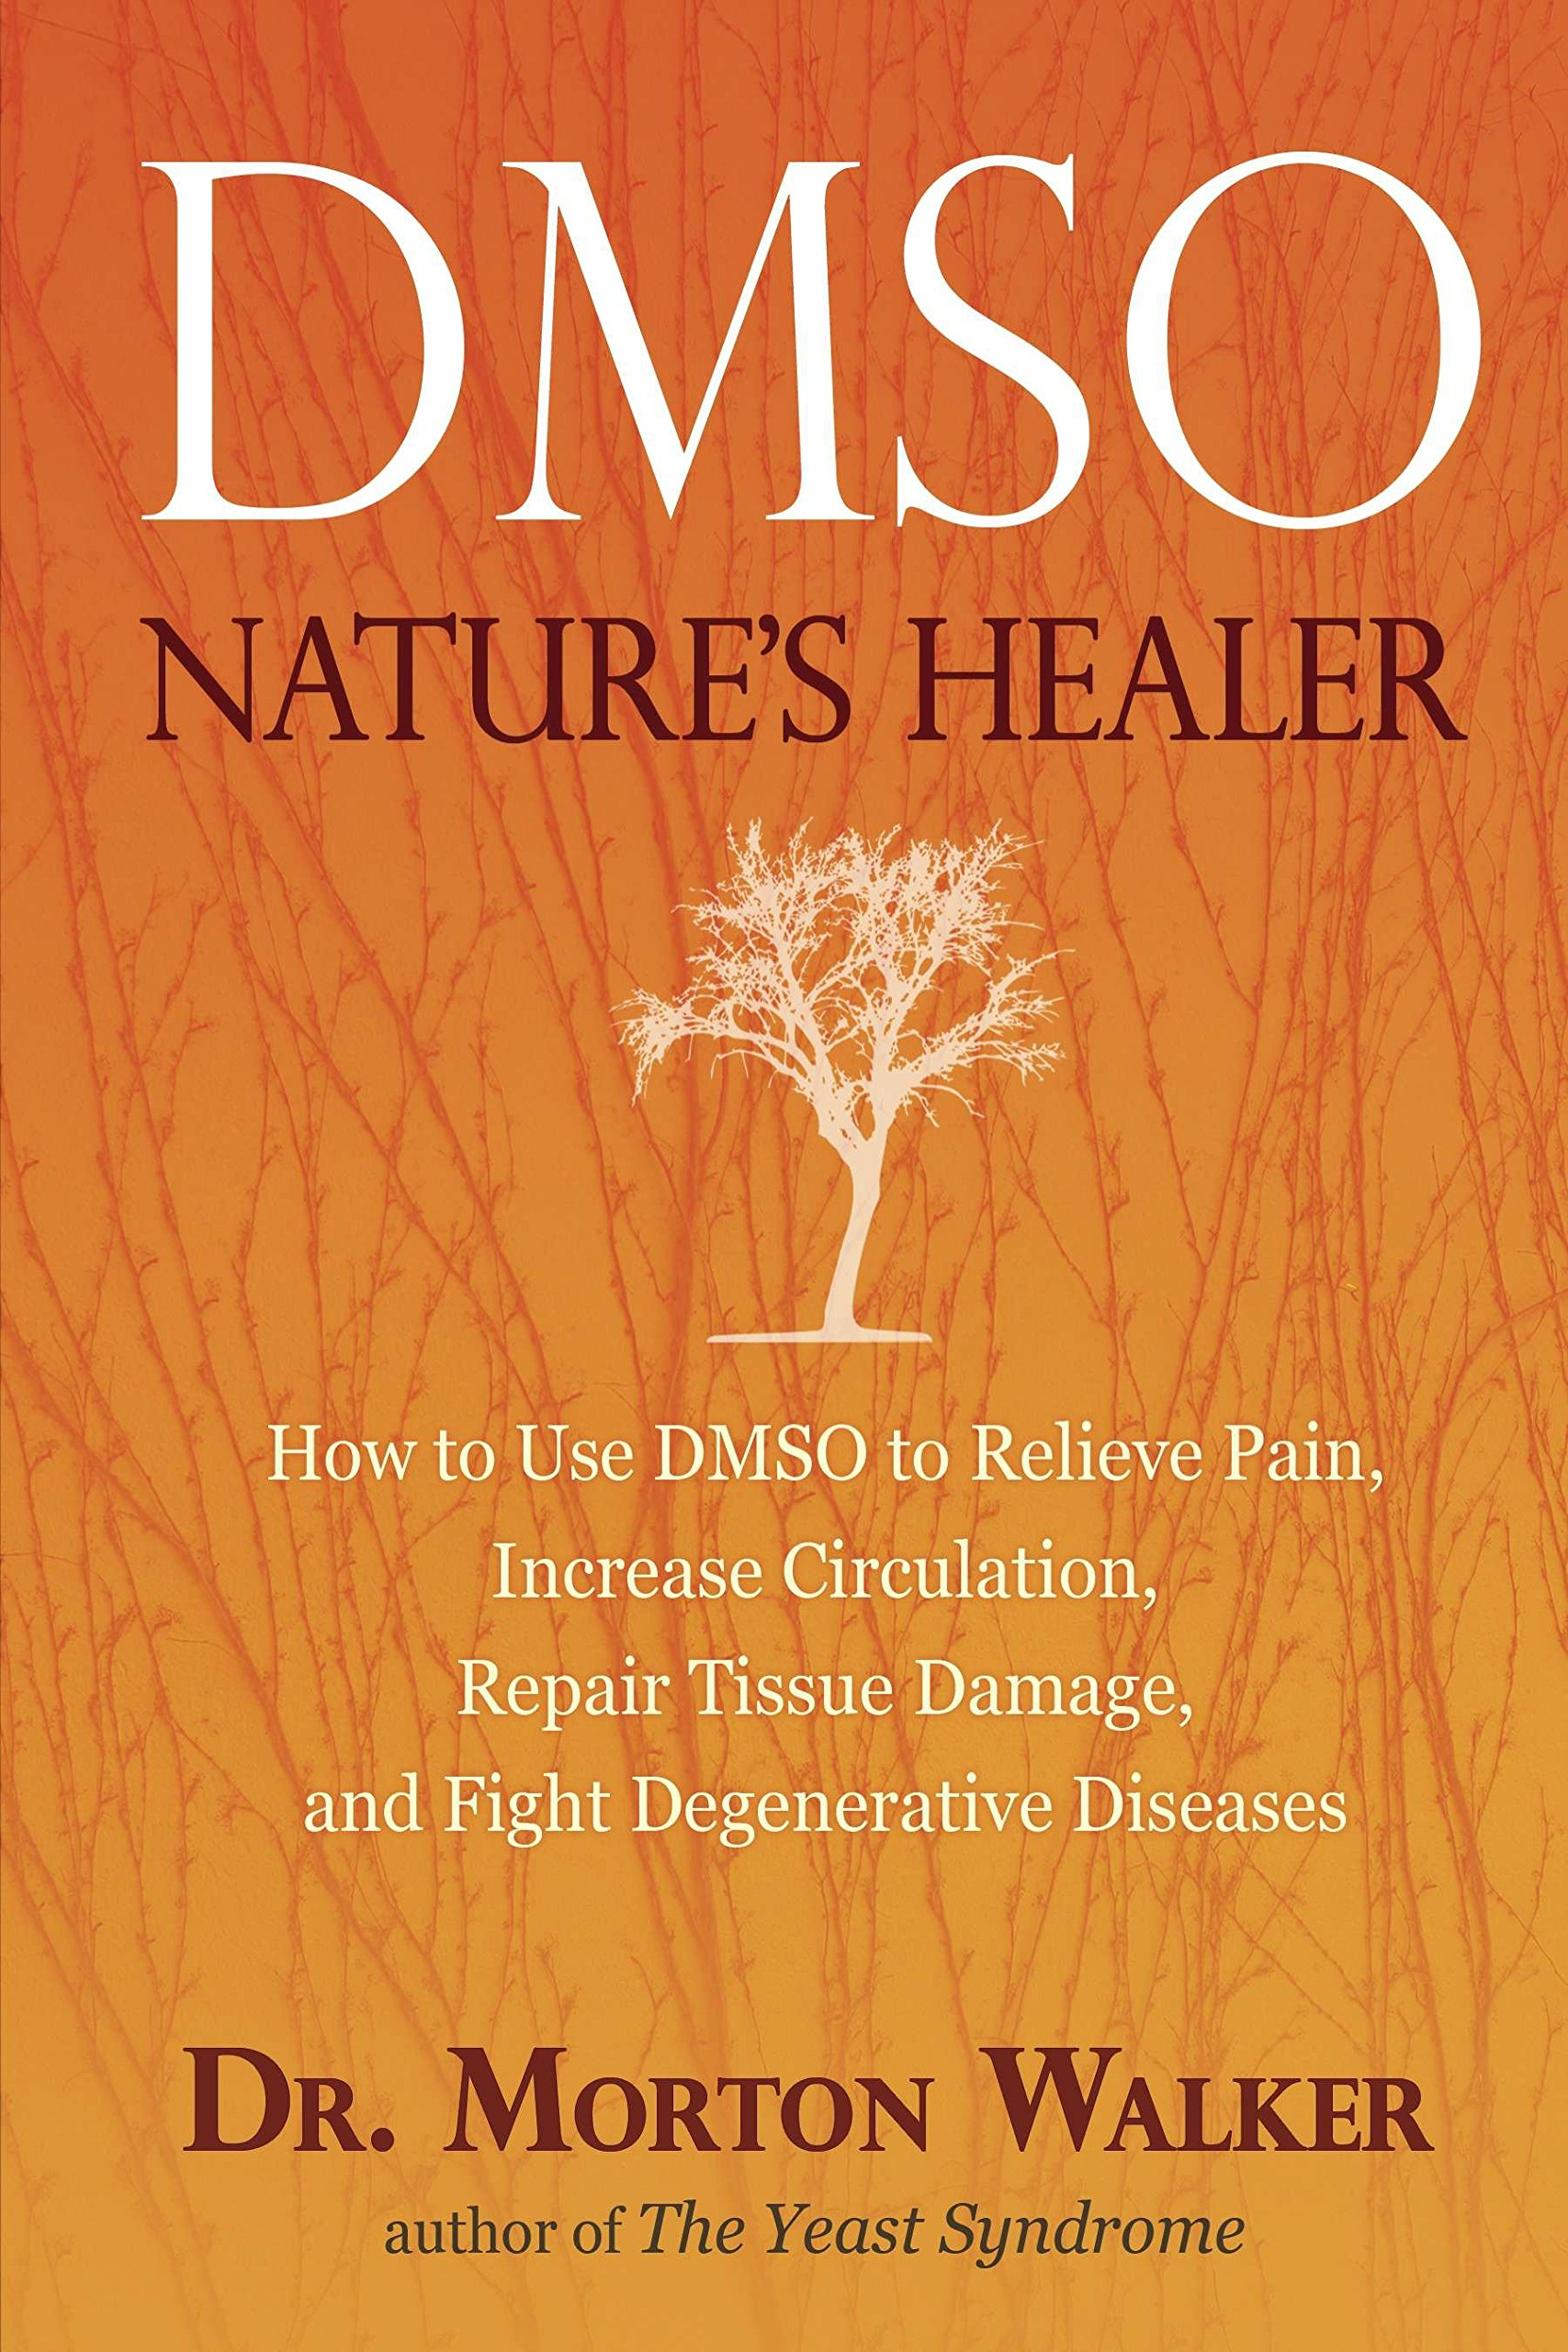 DMSO: Nature's Healer - by Morton WalkerThe healing power of DMSO discussed in this book is no exaggeration. I've been using DMSO on and off for exercise related injuries since 1983. It really works.Depending on where it's applied, sometimes the skin will burn and itch for about 15 minutes and look like a bad sunburn afterward. This is temporary and harmless. On other places I will feel almost no sensation. It's especially effective on a fresh tissue injury. Since it quickly penetrates the skin and enters the blood stream, within a few minutes of application there is always a fishy taste in my mouth. One social side effect of frequent use is that the user will emit a fishy smell! This is a small price to pay for those in chronic pain.At least for me, the pain killing effect of DMSO is uneven. Sometimes it will kill the pain completely, other times the effect is partial. But it always does something. Unlike prescription painkillers, DMSO's effect is cumulative. The more frequently one uses it, the less one needs. The least irritating delivery system is DMSO combined with aloe vera gel. – Amazon Reviewer